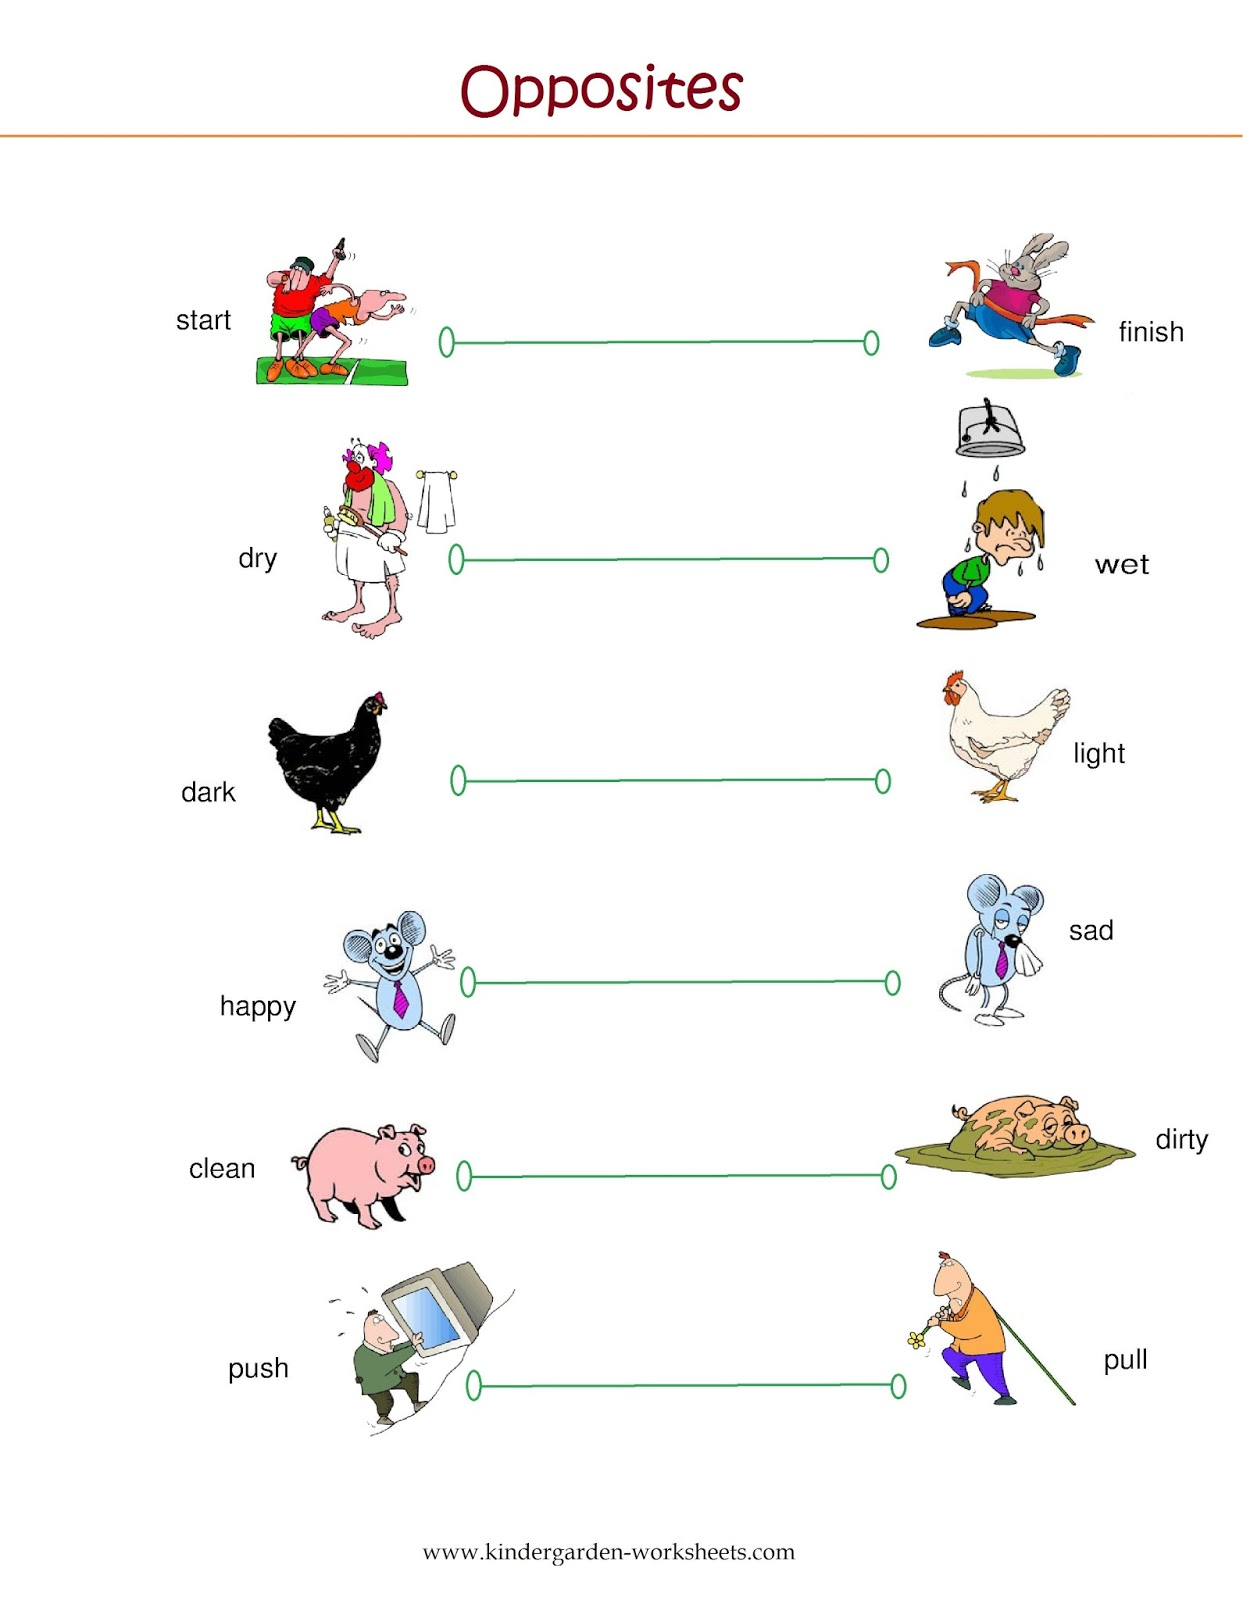 Opposite Words With Pictures Worksheets Scalien – Opposite Words Worksheets for Kindergarten